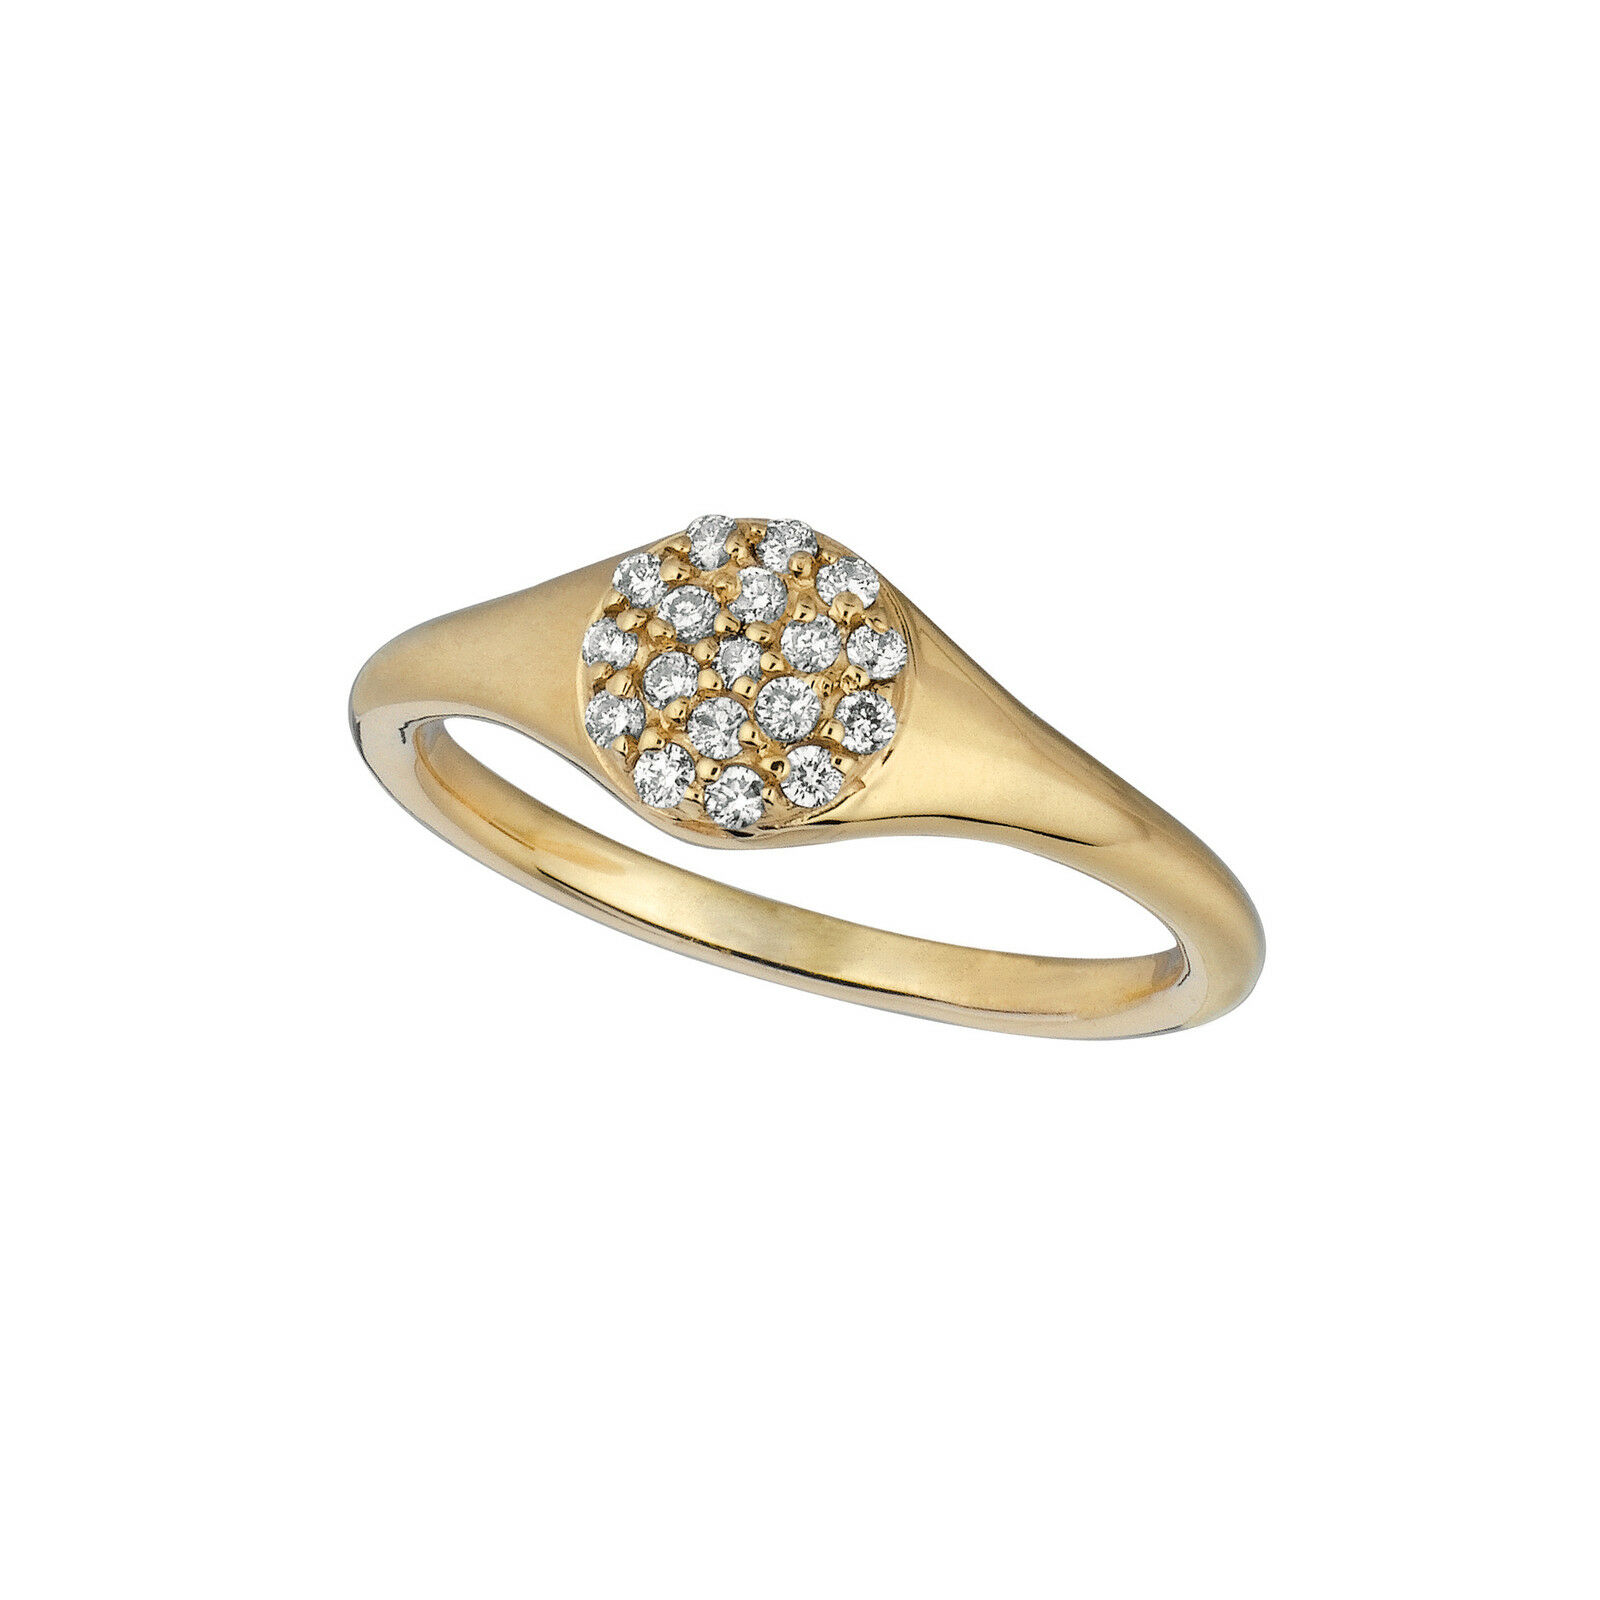 0.18 CT Diamond ring Set In 14K Yellow gold IDJR6757YD